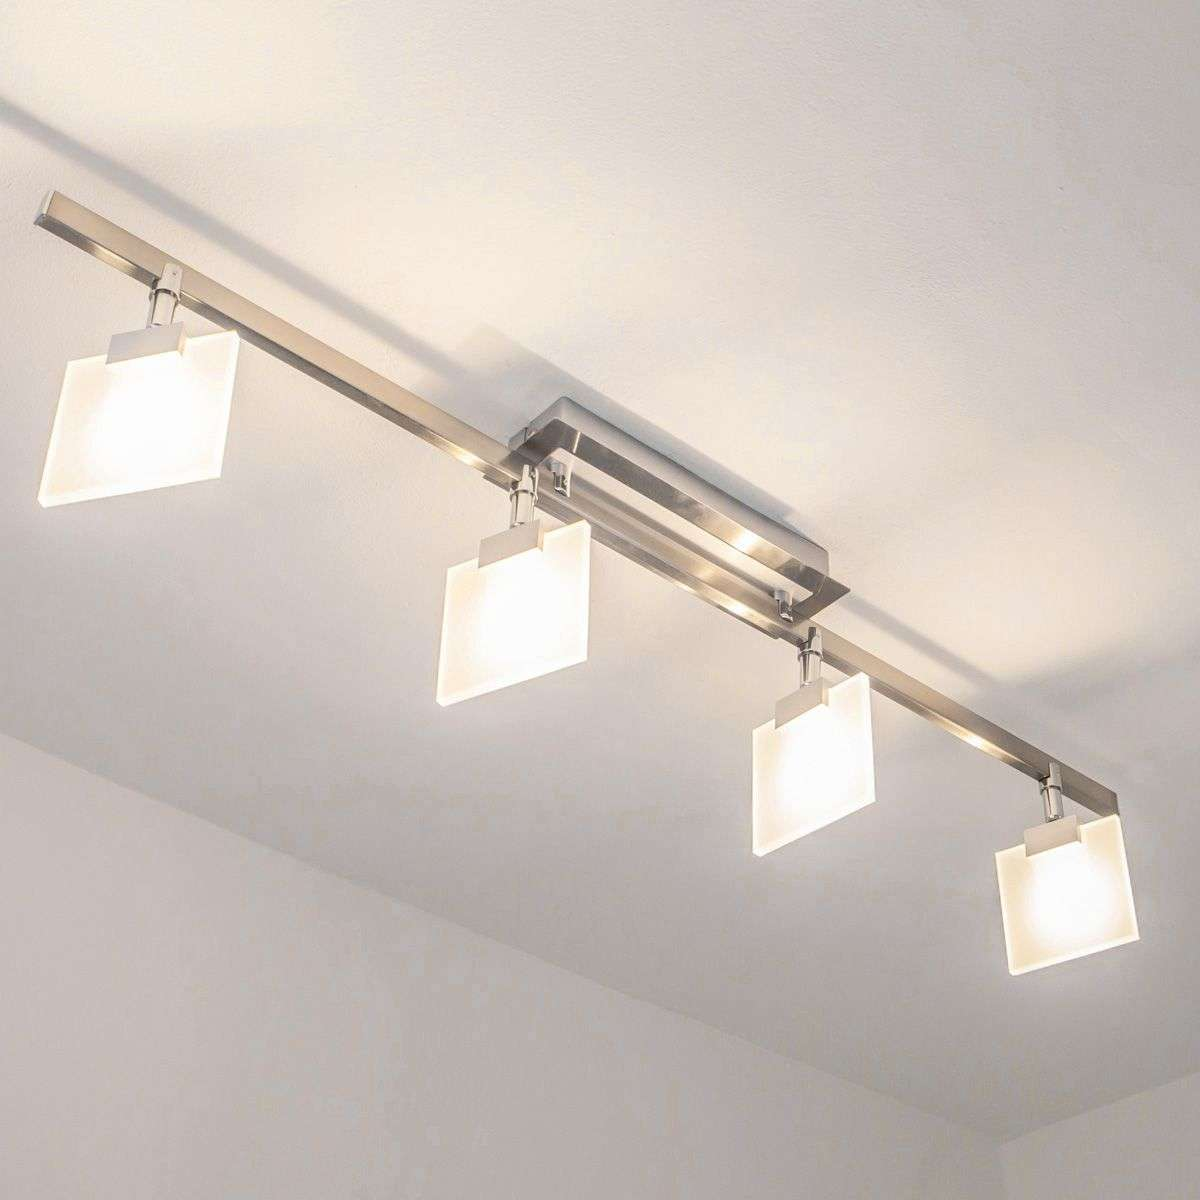 Superb Livius Kitchen Ceiling Light With COB LEDs